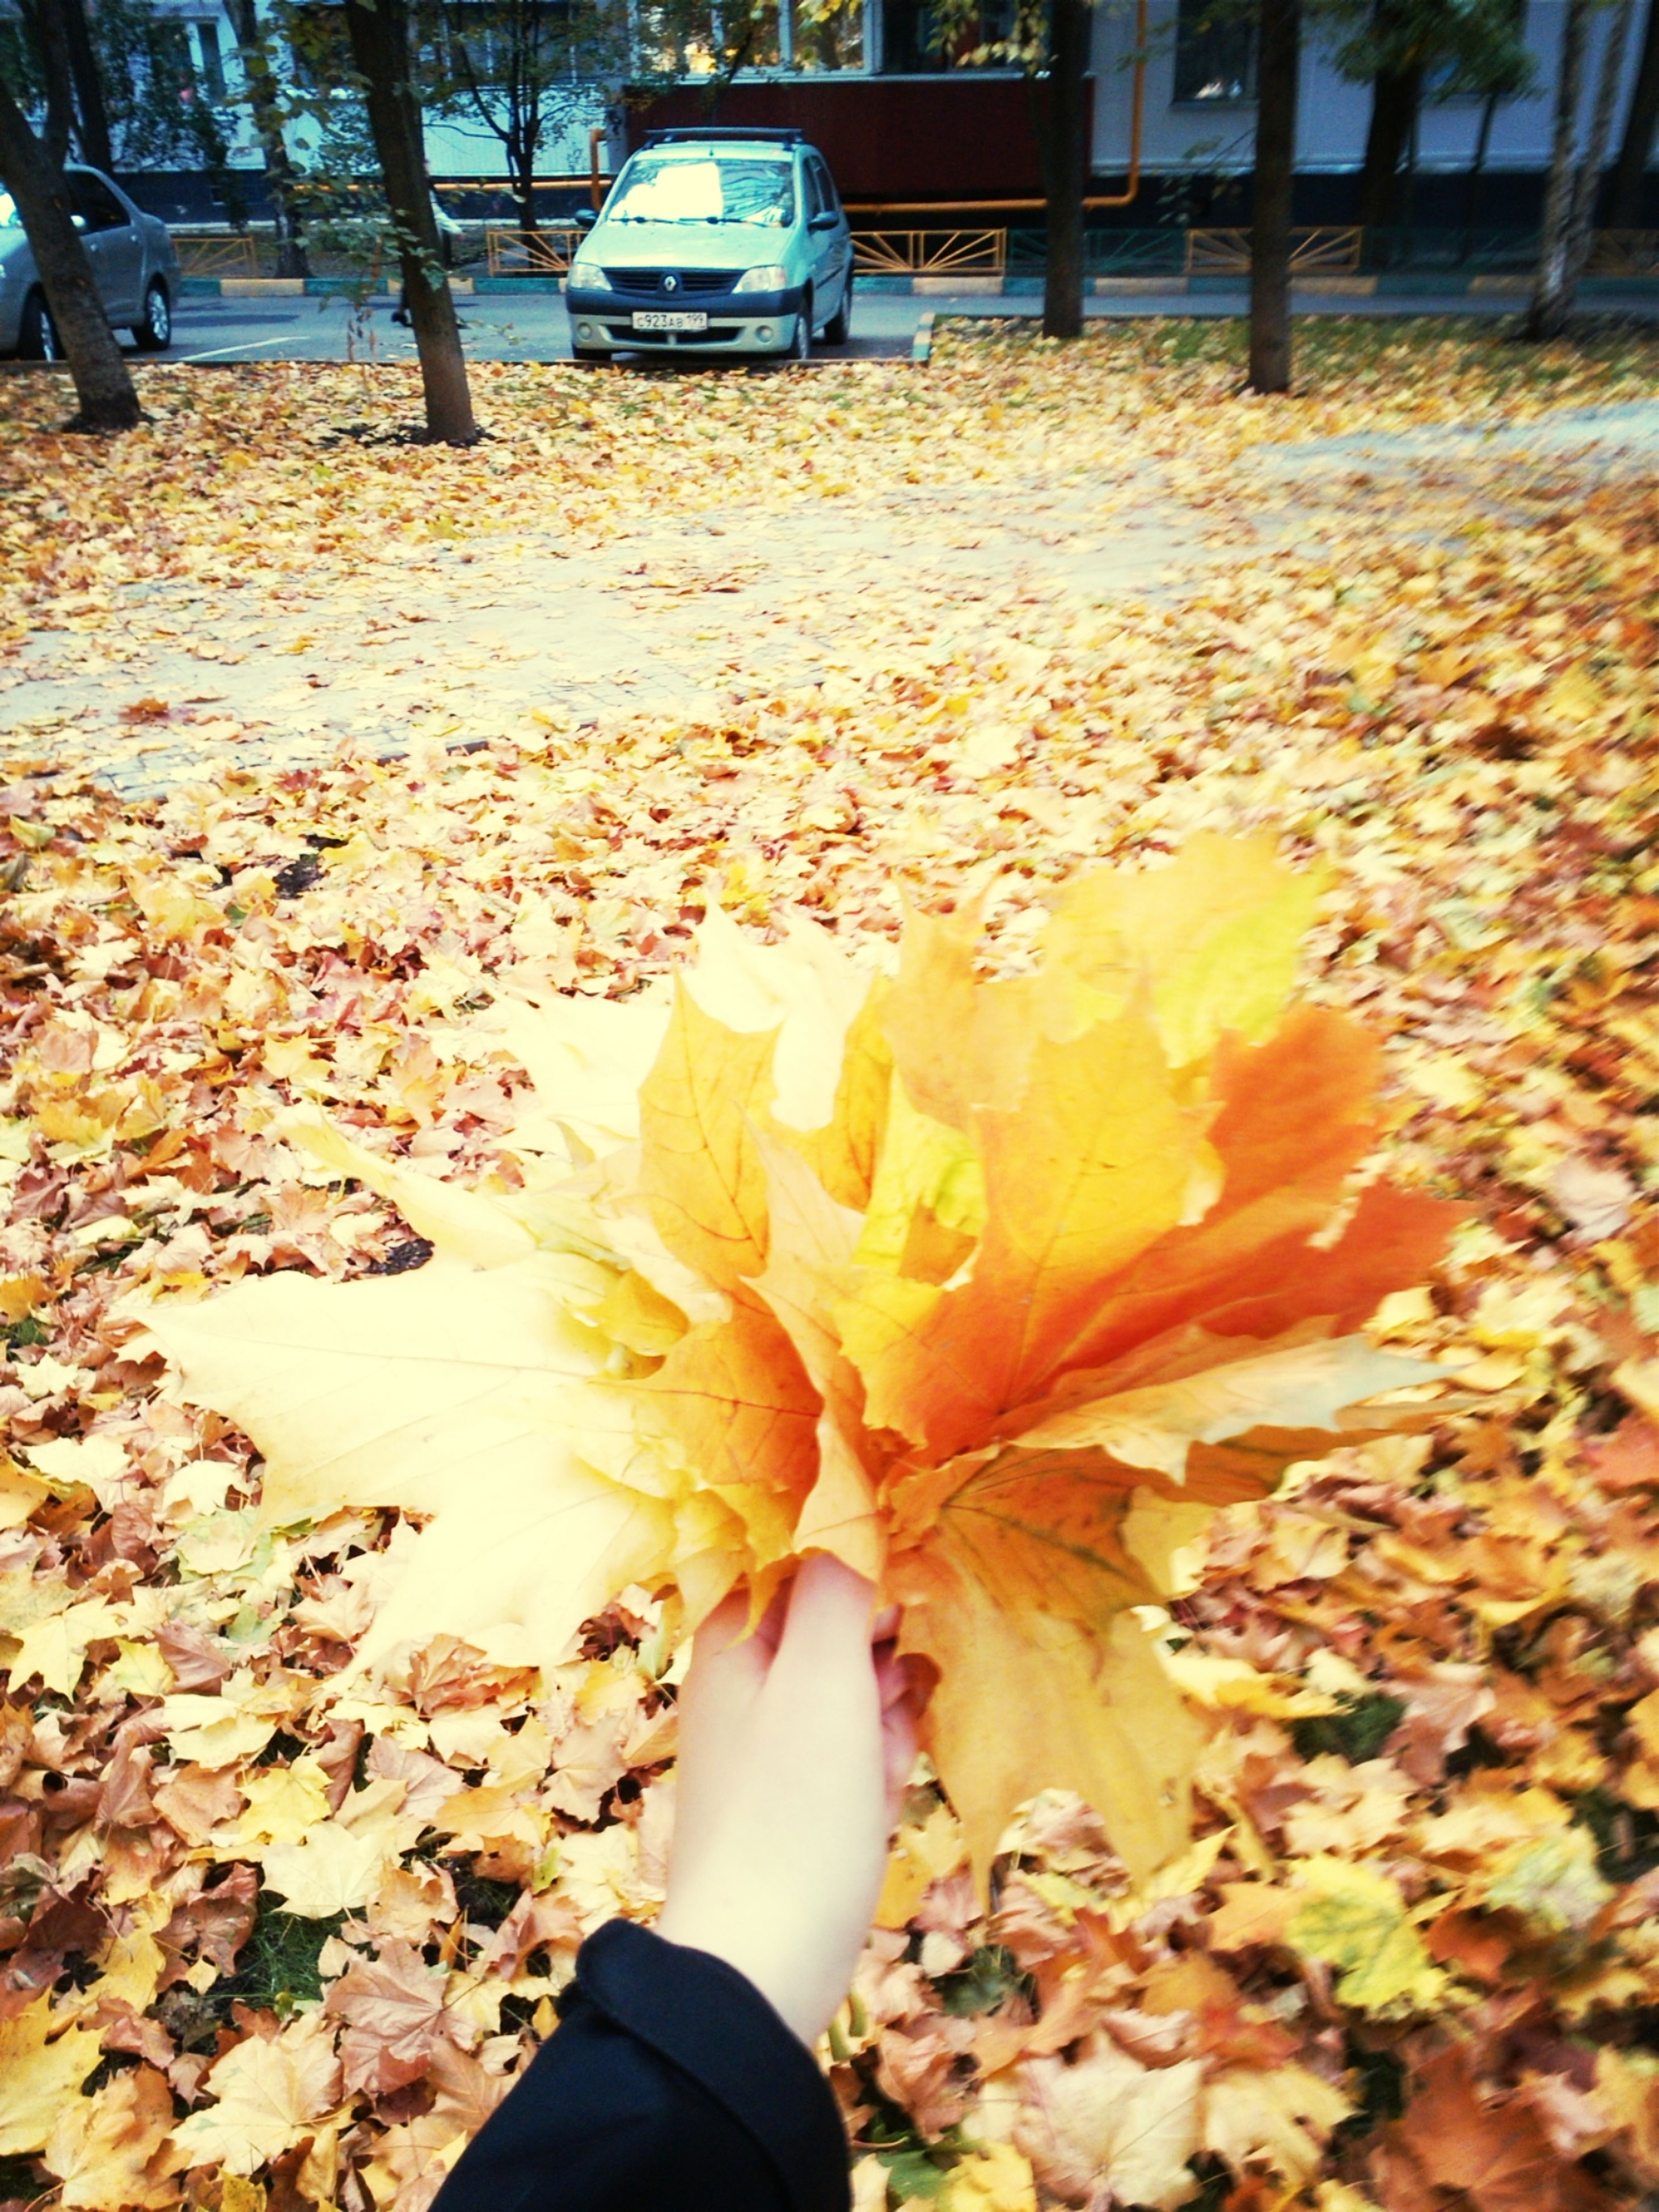 personal perspective, leaf, autumn, season, low section, lifestyles, dry, change, person, leisure activity, unrecognizable person, leaves, part of, outdoors, holding, nature